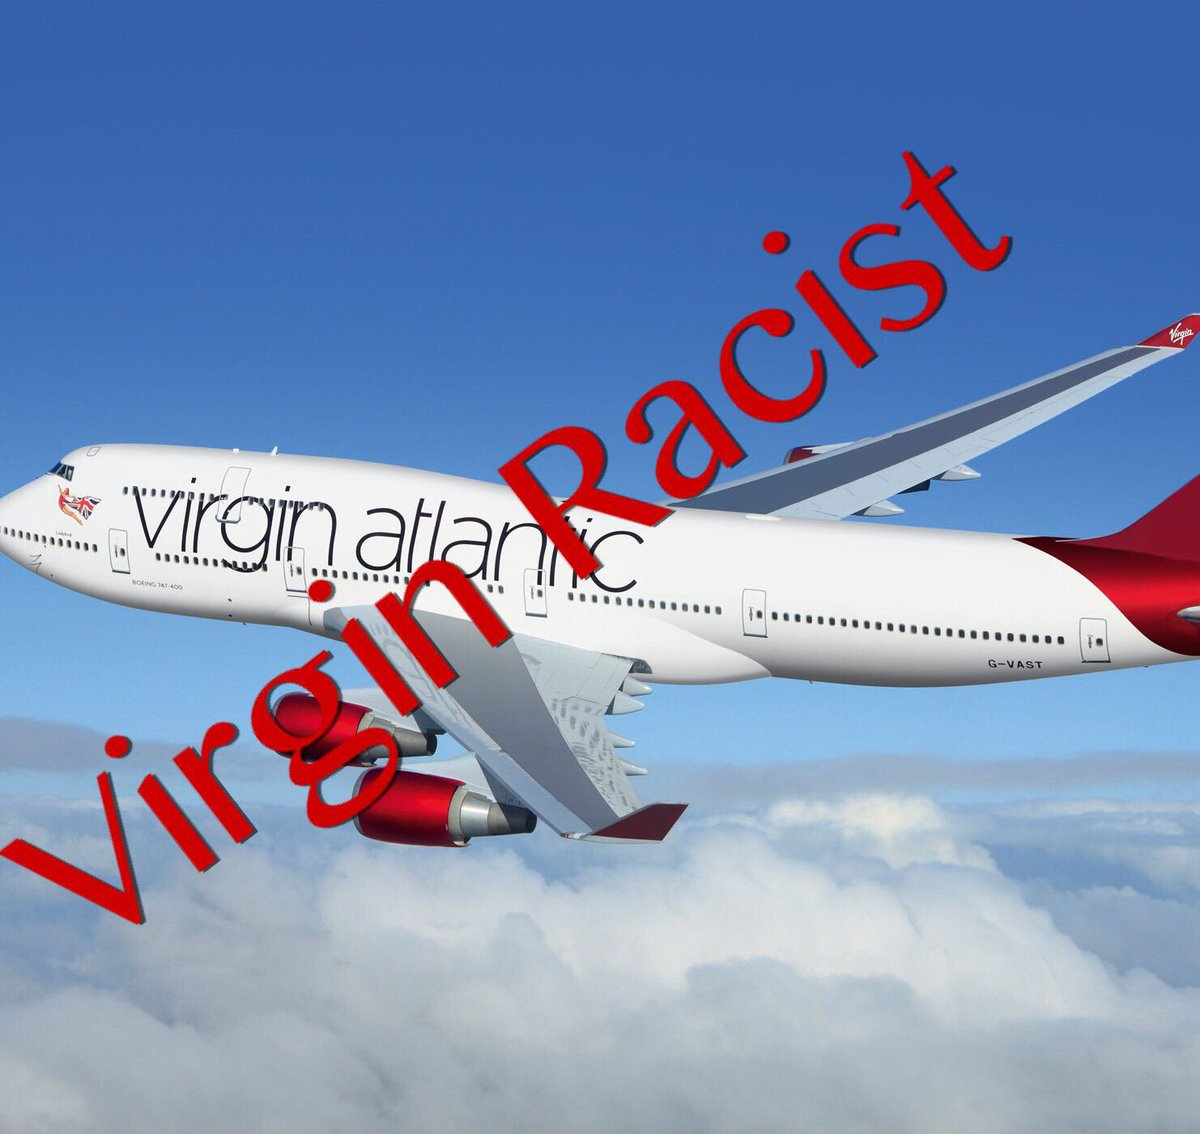 @richardbranson @Virgin  Please apologize for the racially charged comments made by your employee Nathan Smith. https://t.co/yxhhuxdZPc